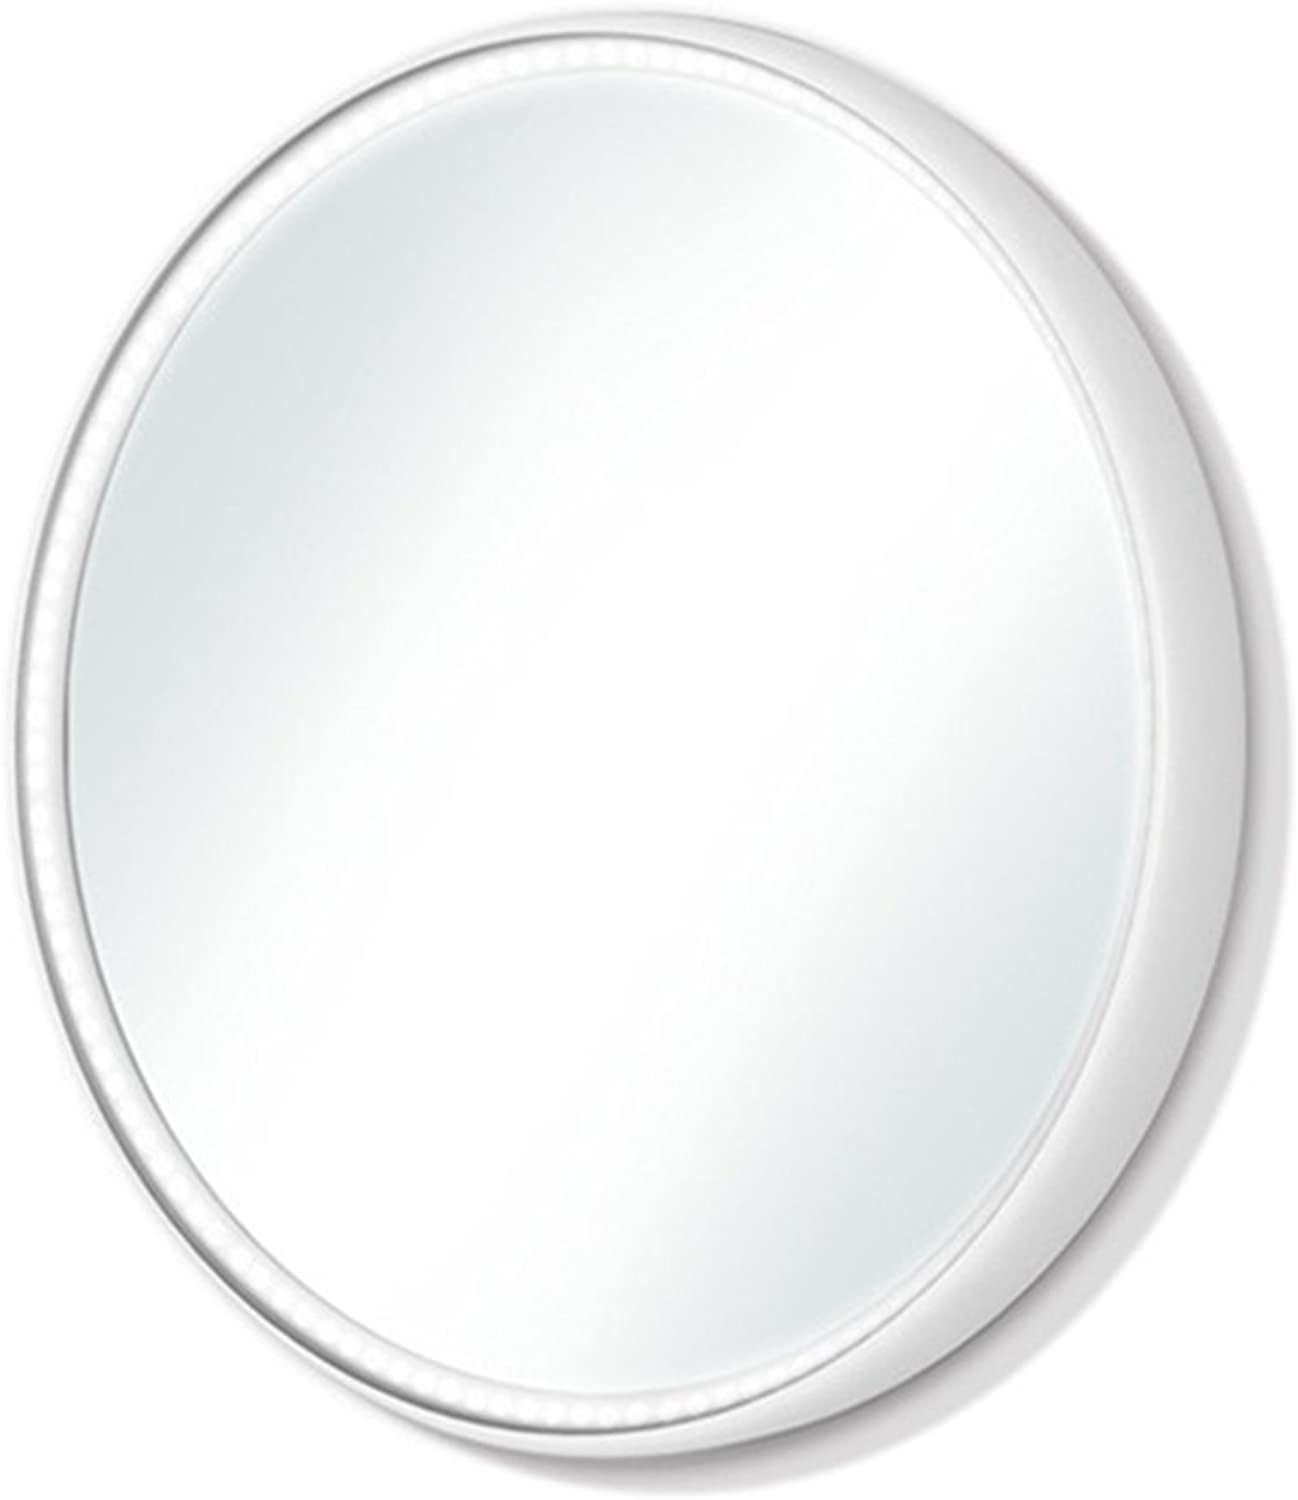 LED Wall Mirror, 16.7 inch Diameter Makeup Mirror,KELEEN Vanity Lighted Mirror for Bedroom with 2 Dimmer Modes by Touch Sensor(16.7 x16.7 x1.6 inches)